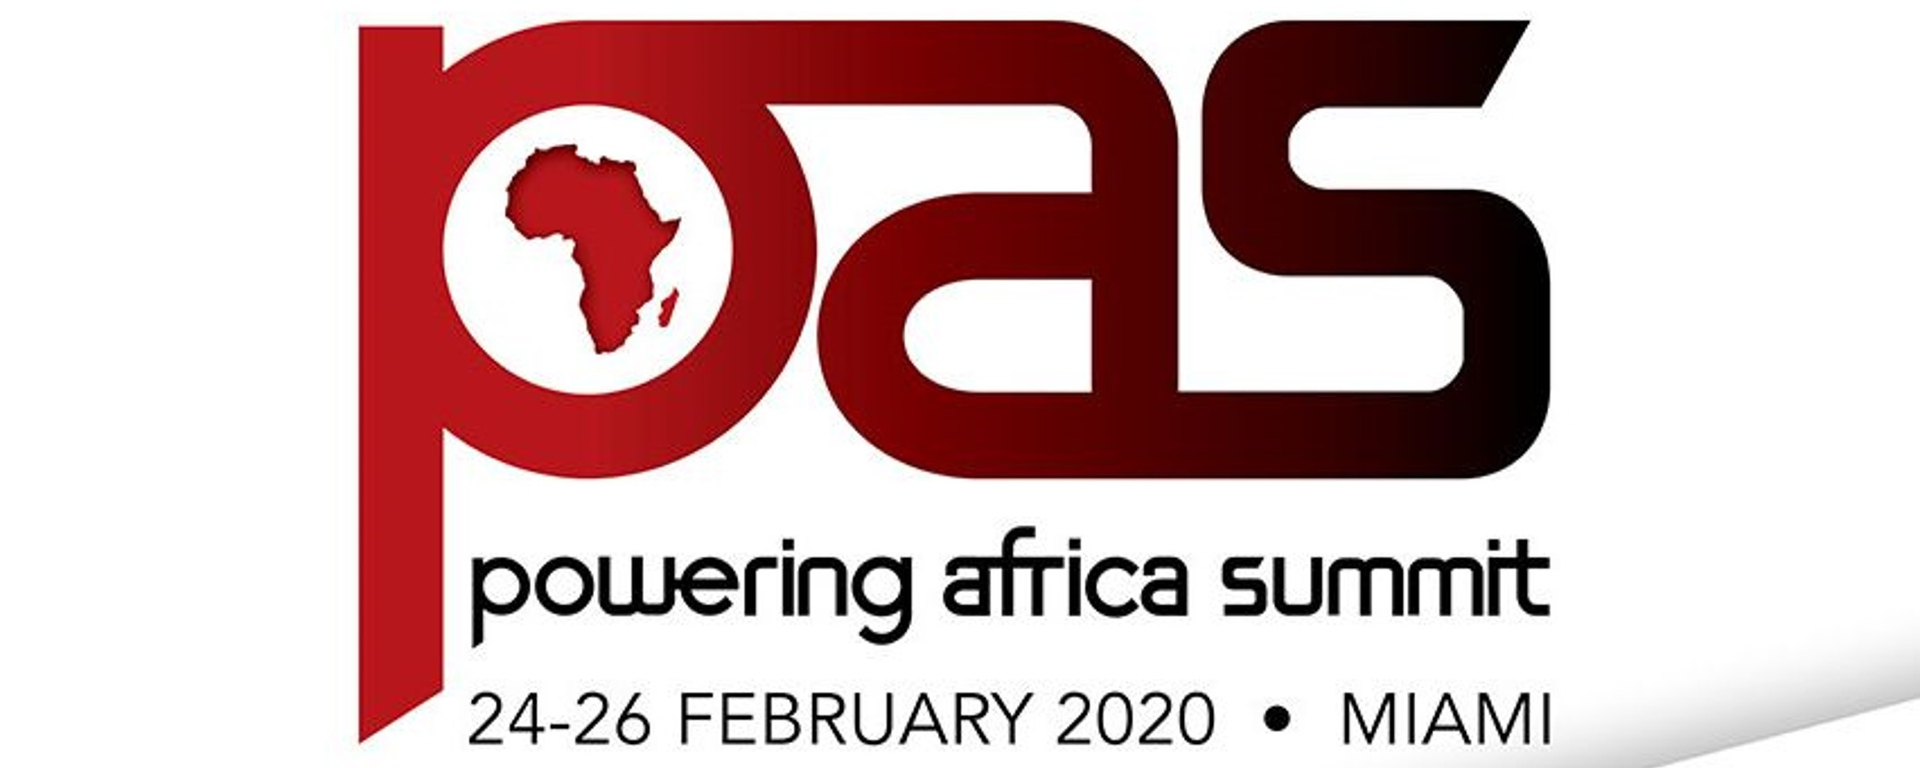 EnergyNet - The 6th Powering Africa: Summit (PAS) Movemeback African event cover image